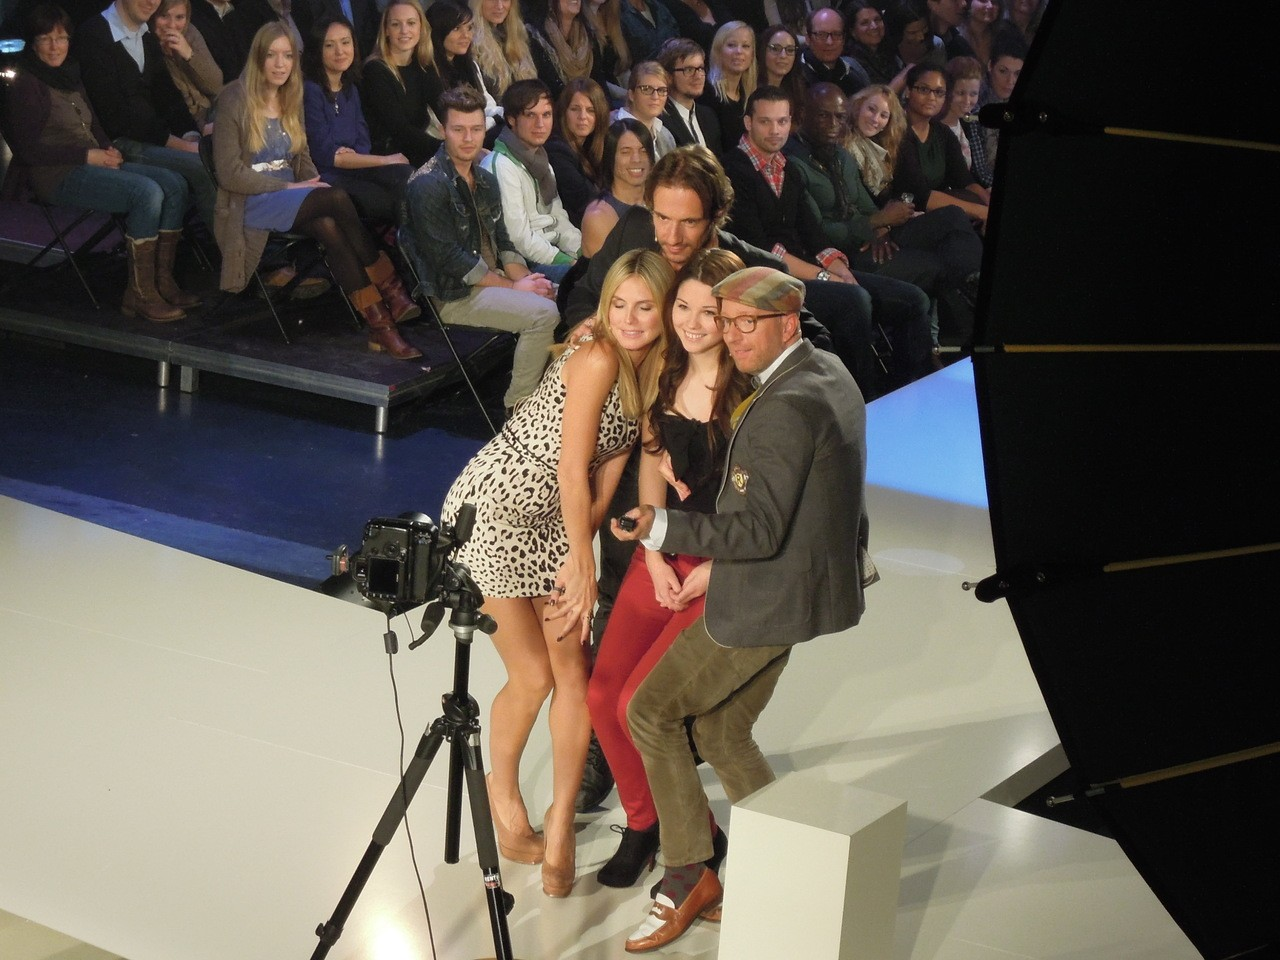 Lighting von TMT beim Dreh von Germanys next Topmodel by Heidi Klum